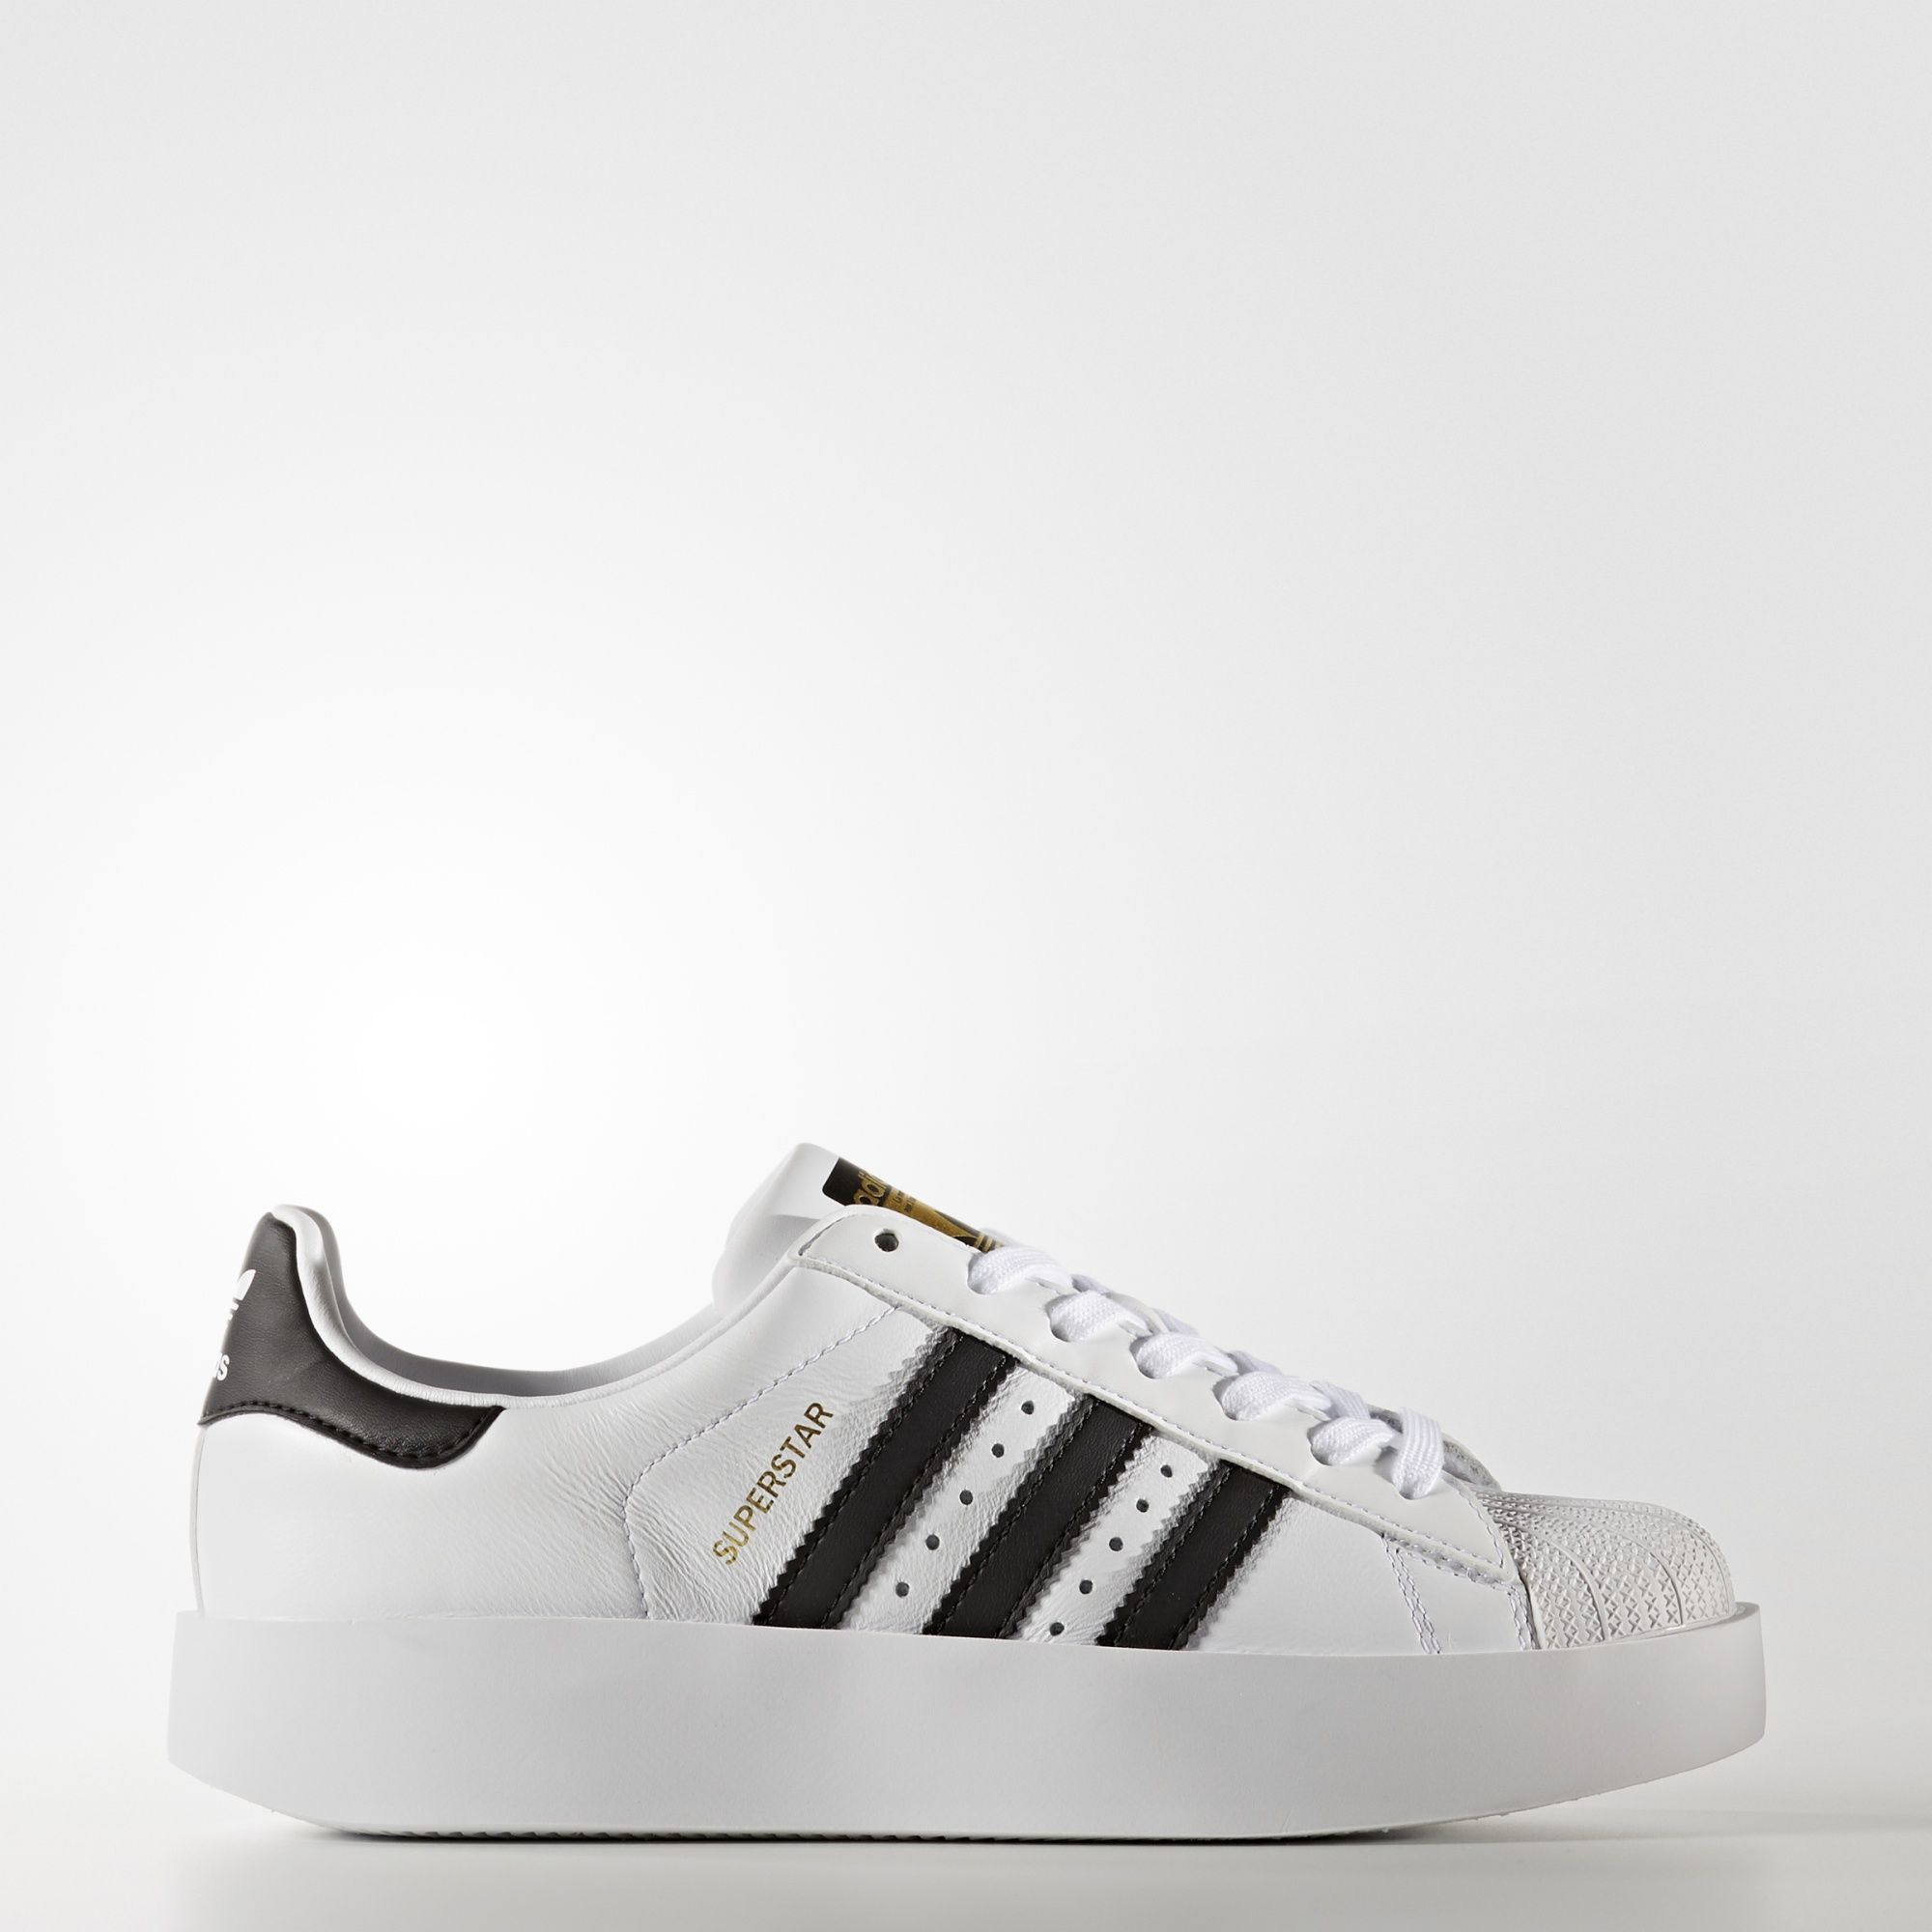 on sale a9d6e f0889 Discover ideas about Adidas Superstar. ADIDAS SUPERSTAR 2 PLATFORM UP EF  NERO-BIANCO - Donna MadeInSneakers - Scarpe Sneakers ...